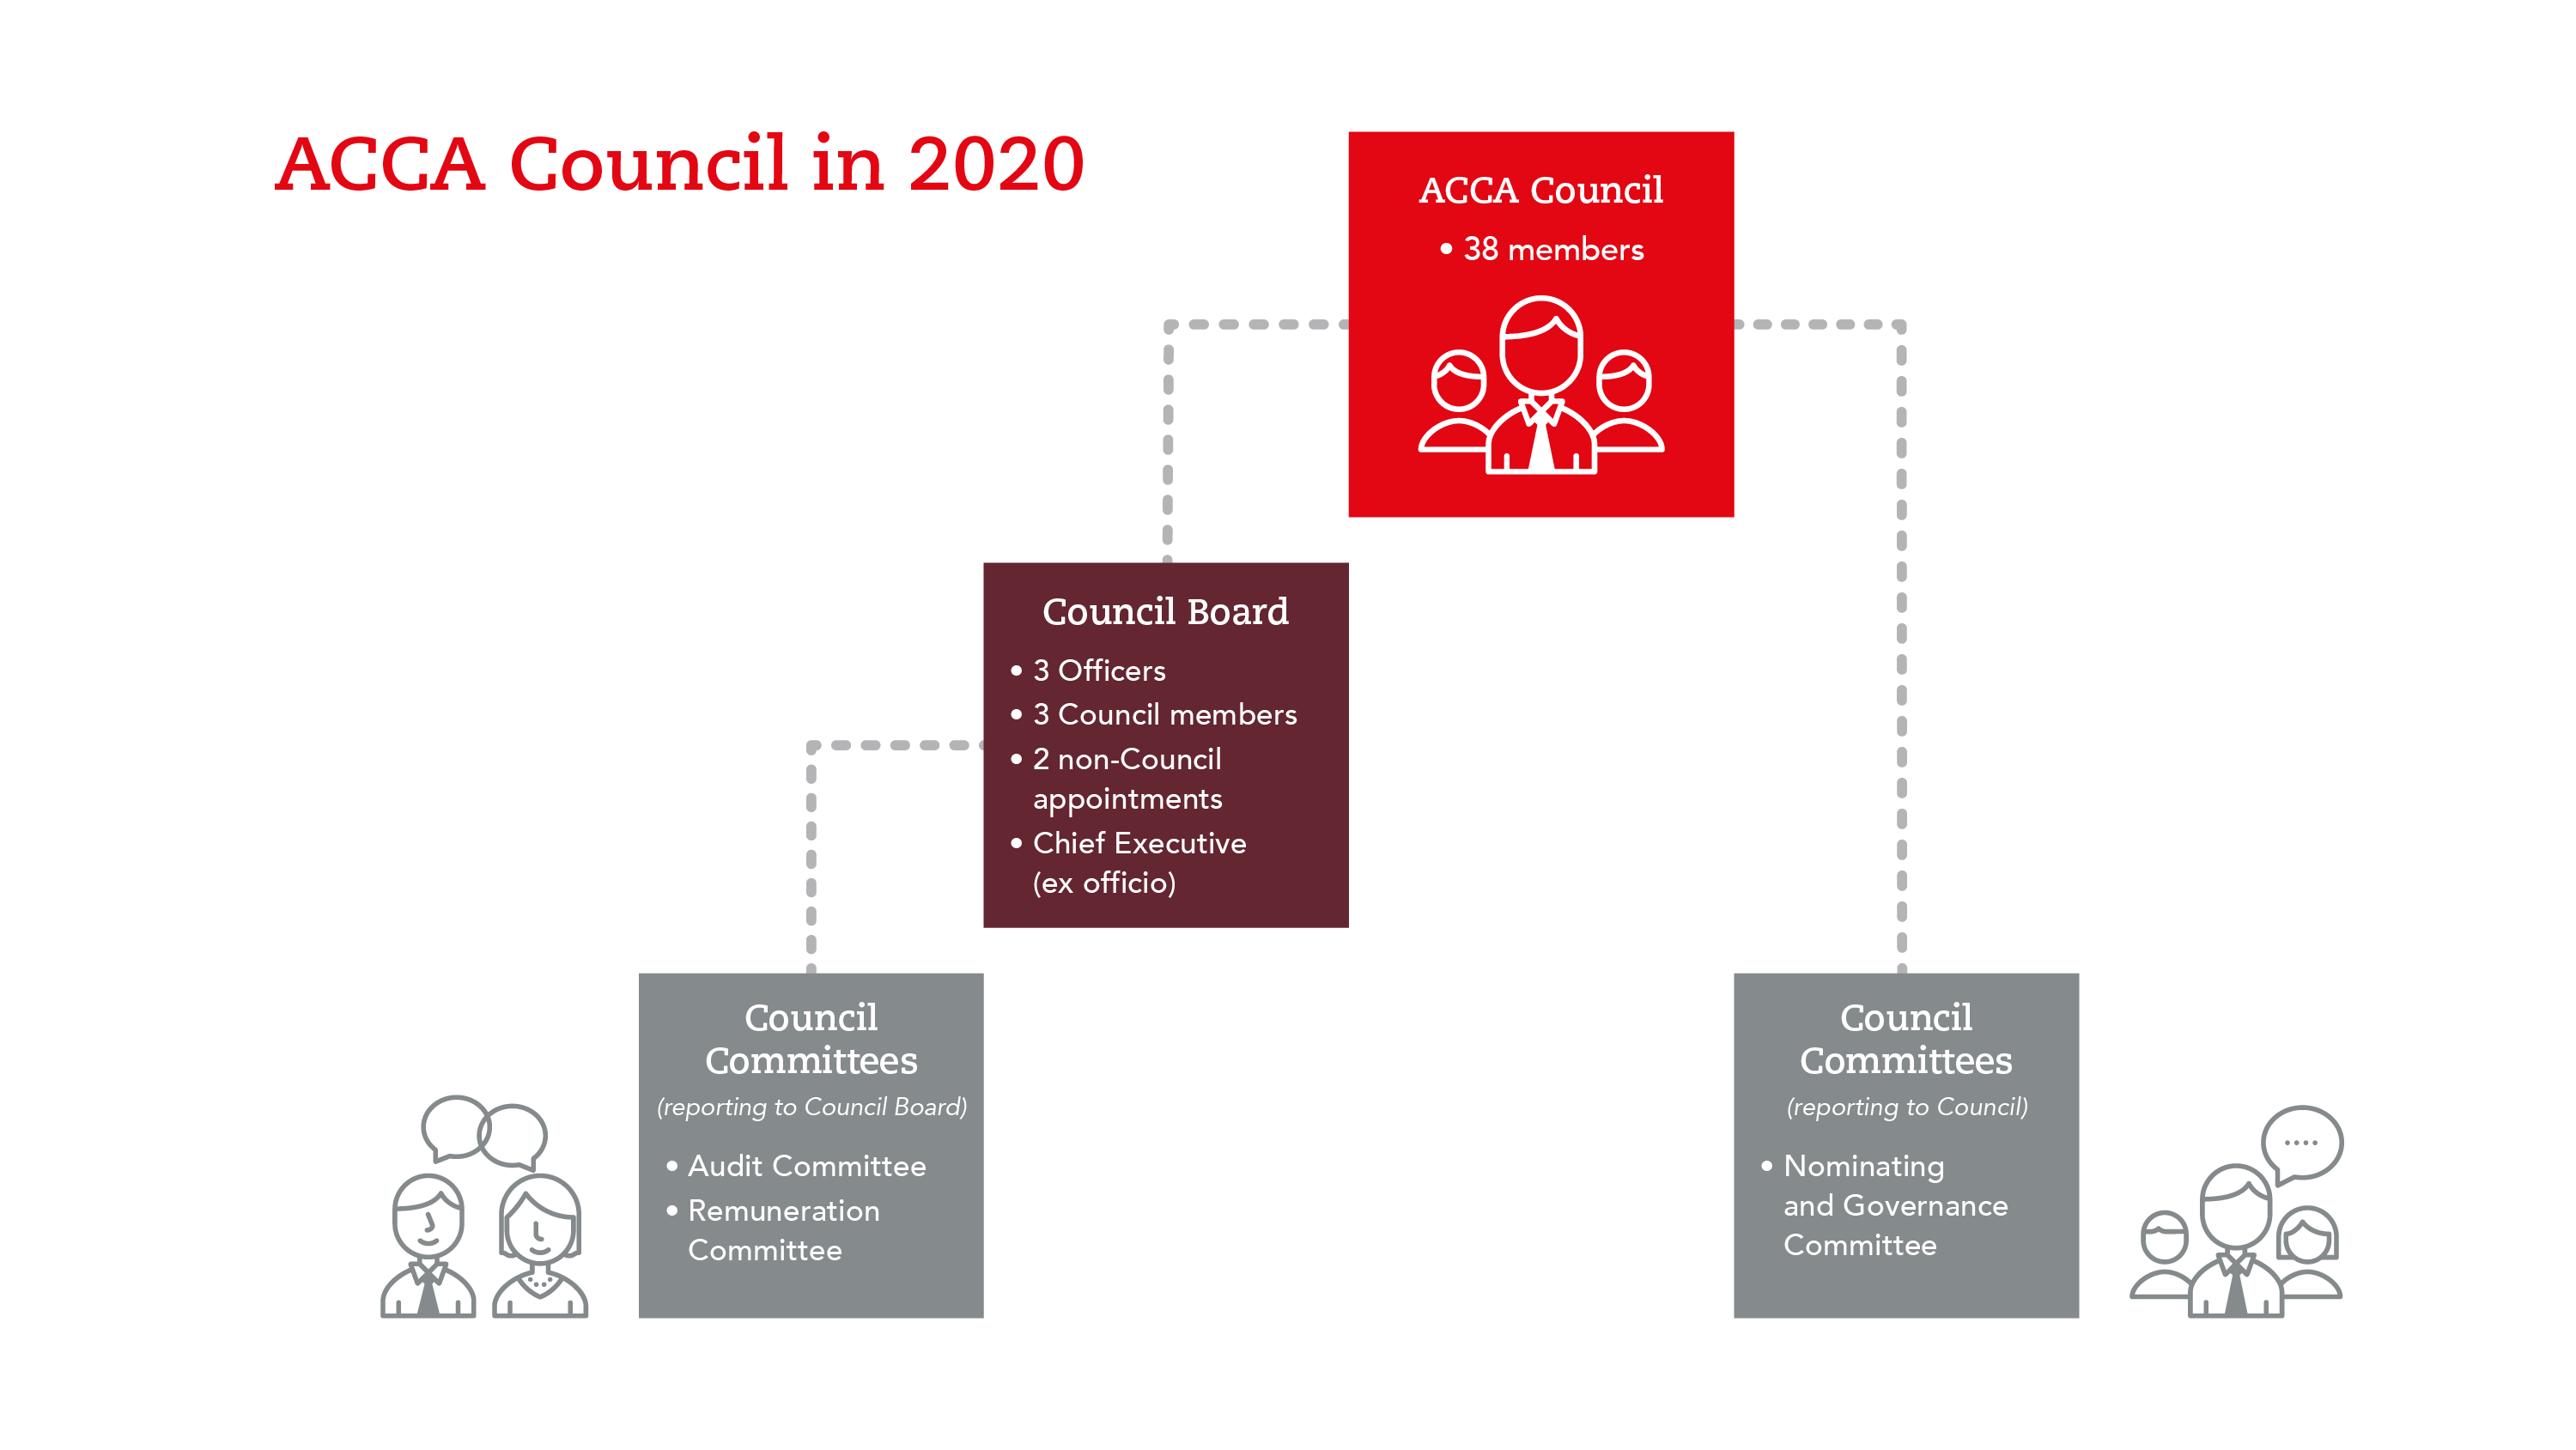 acca-council-in-2019-20